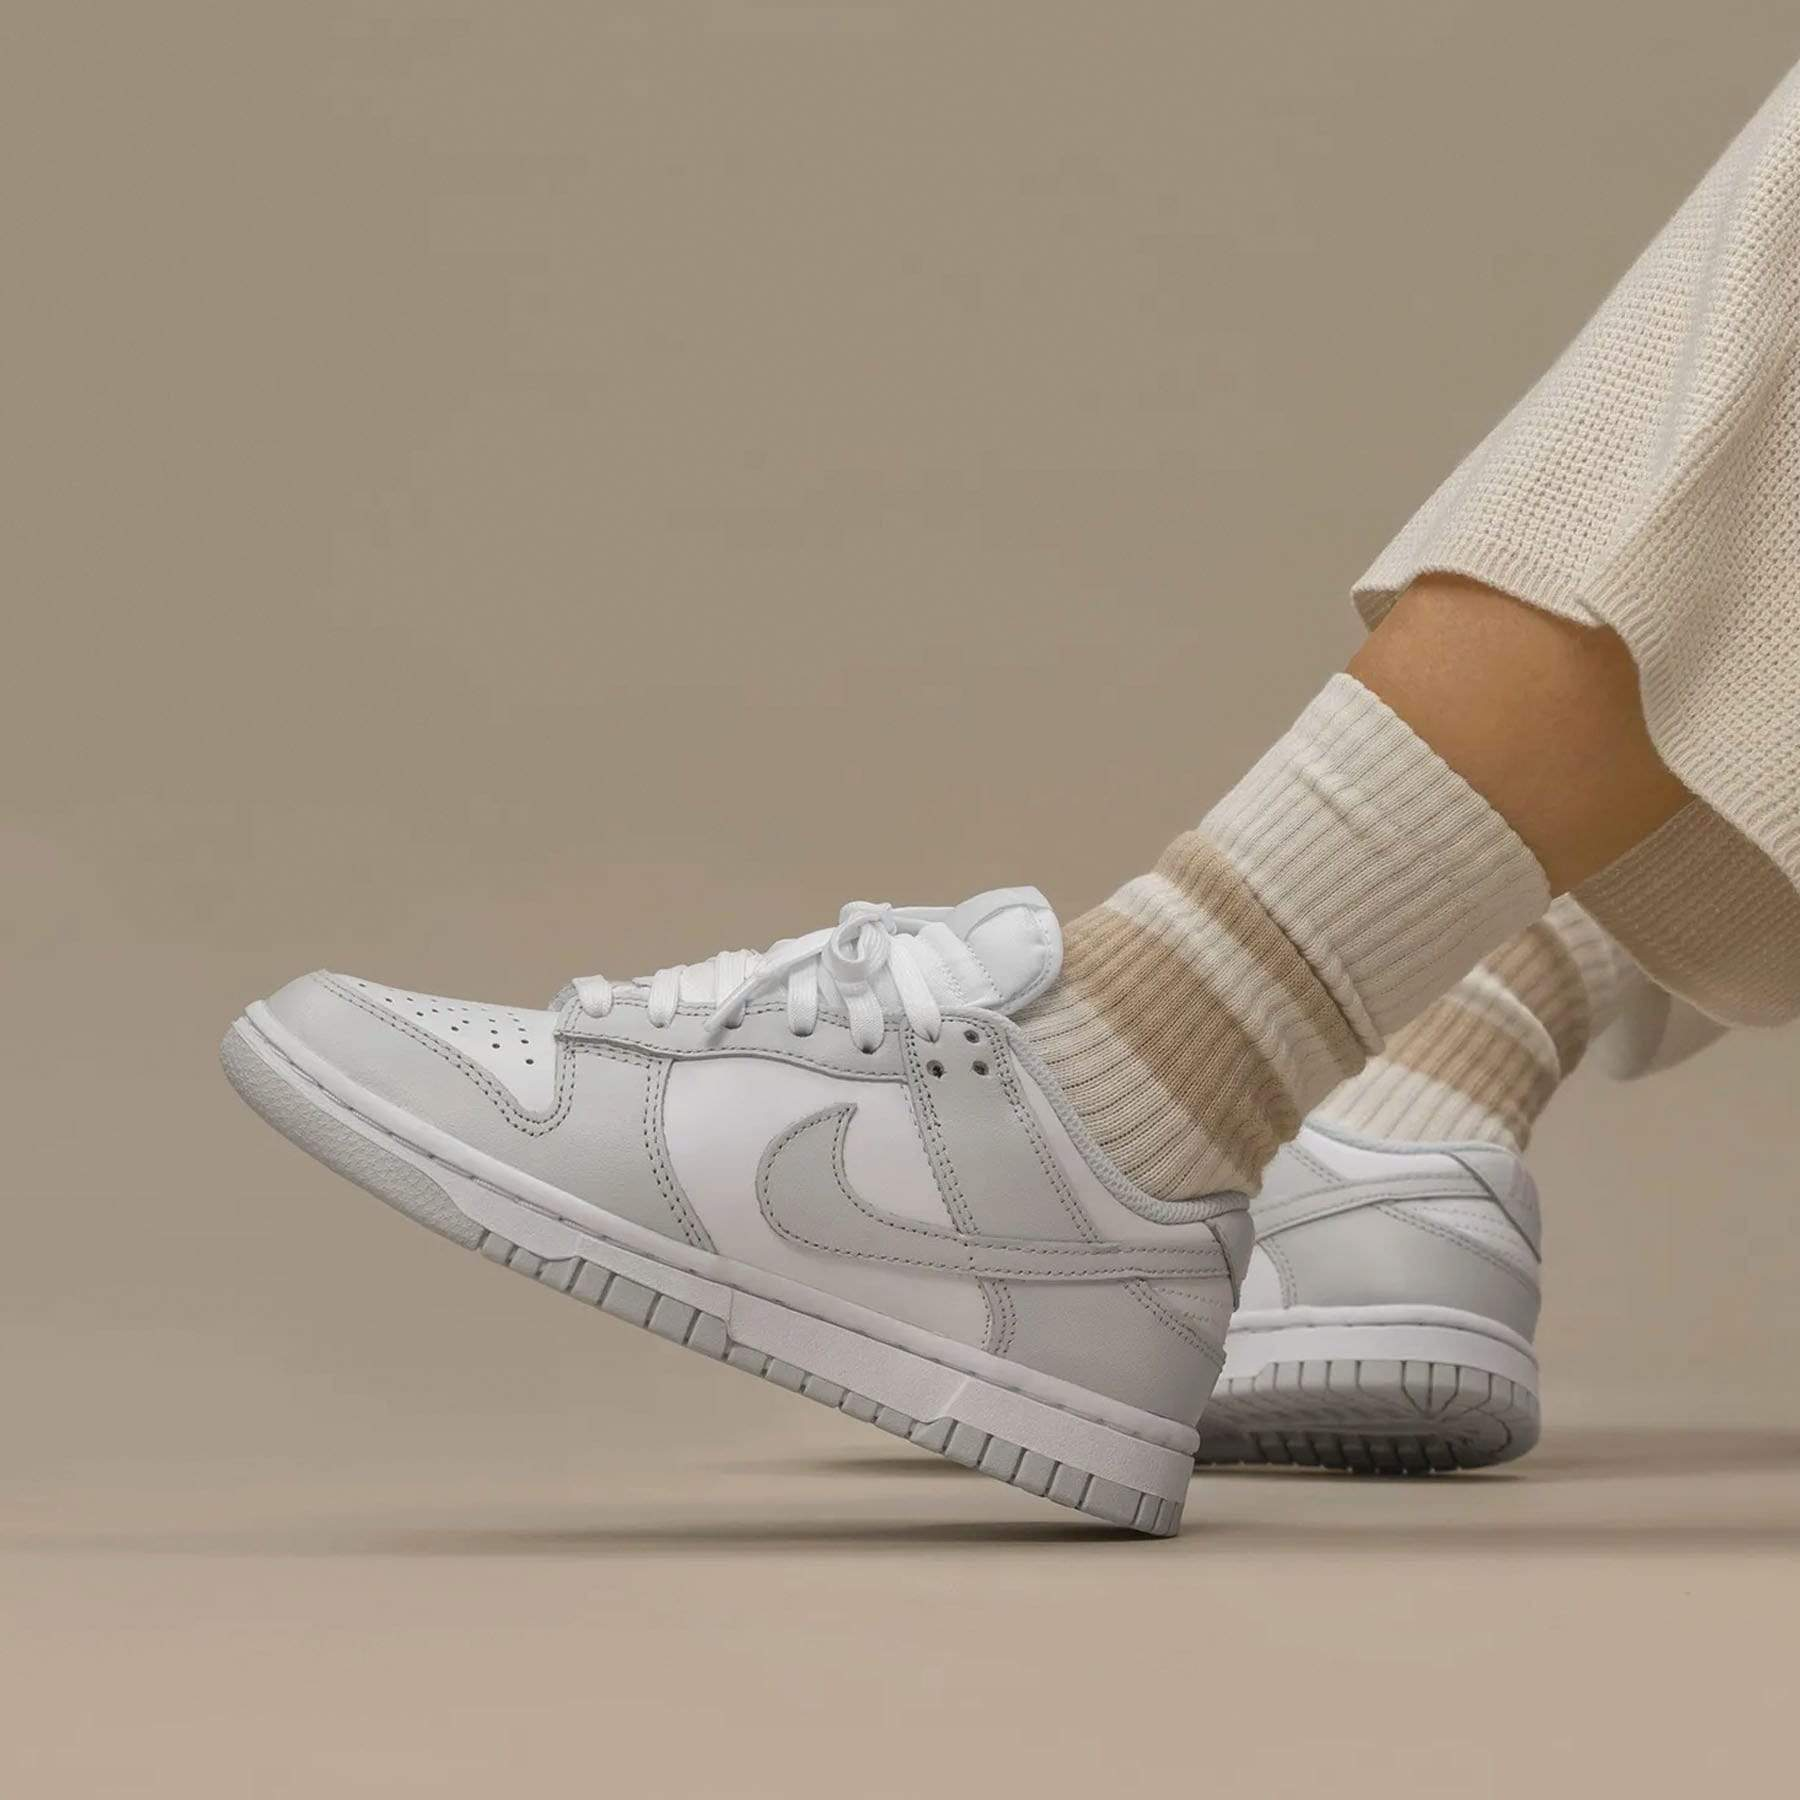 Nike Dunk Low Wmns 'Photon Dust' - Kick Game